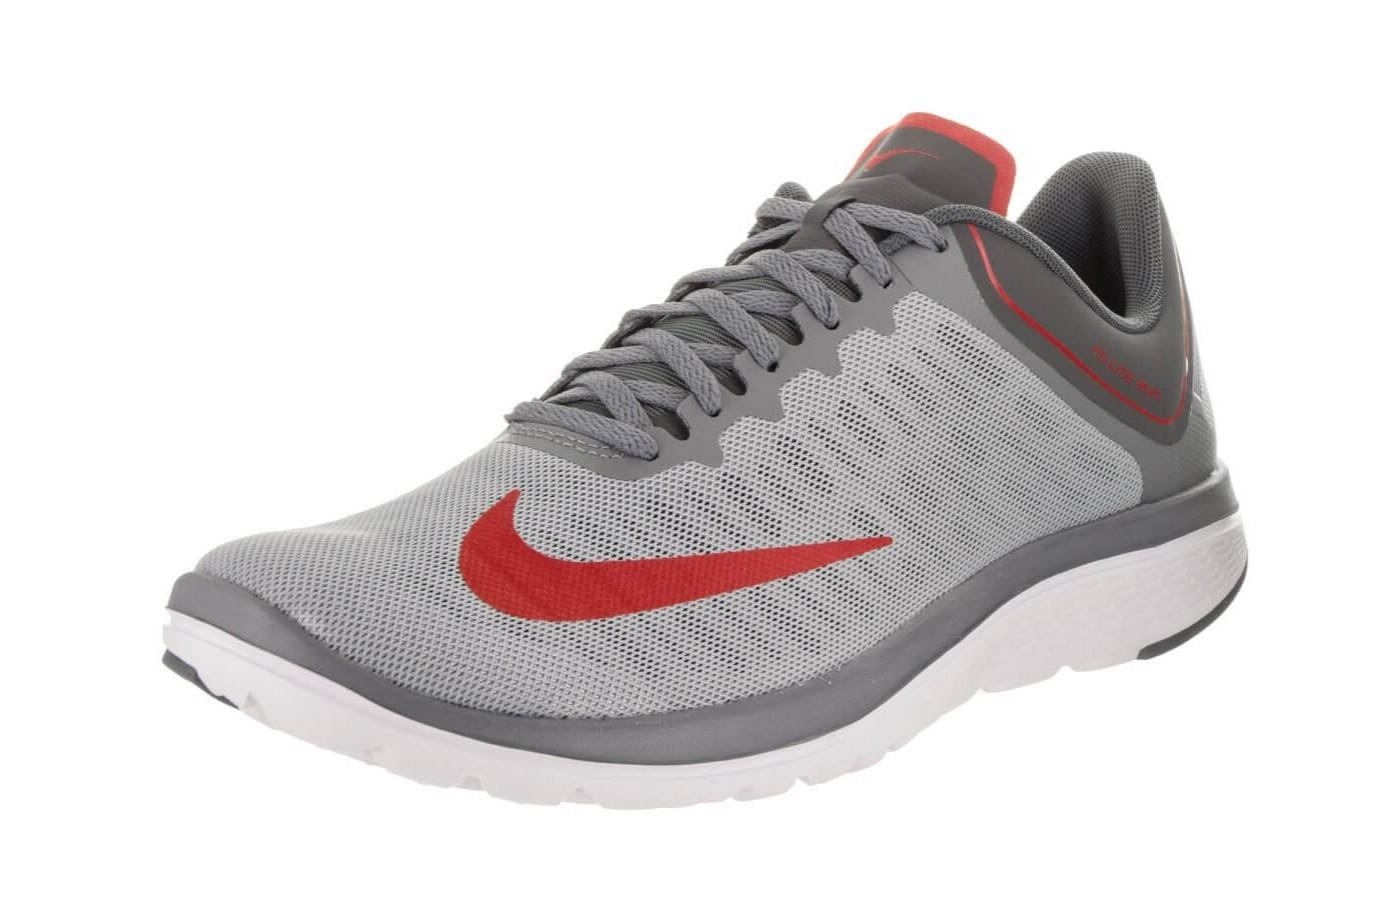 ... The upper of the Nike FS Lite Run 4 is outfitted in Breathe Tech fabric